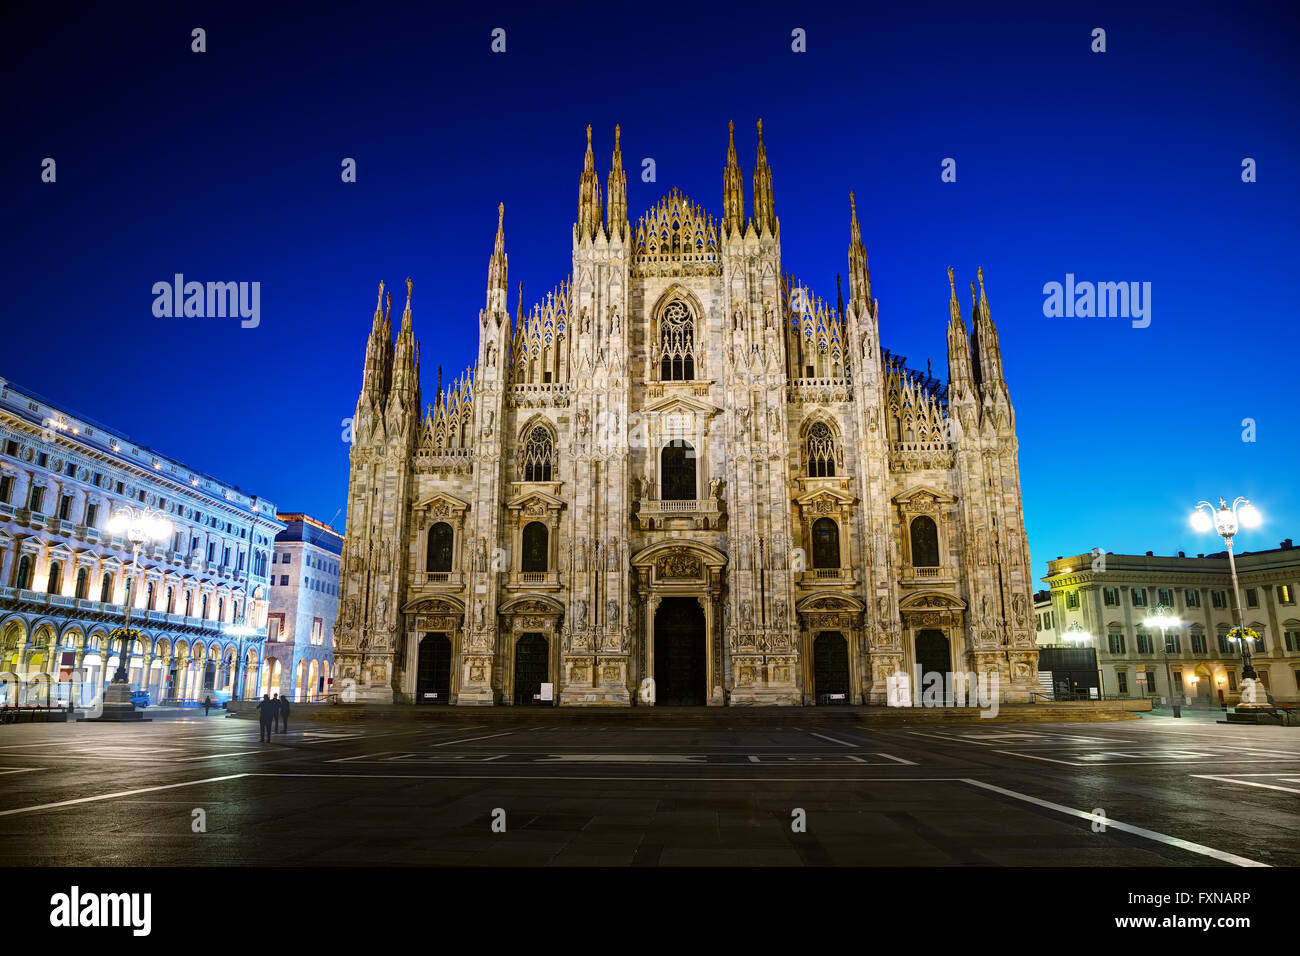 Duomo cathedral early in the morning in Milan, Italy. - Stock Image